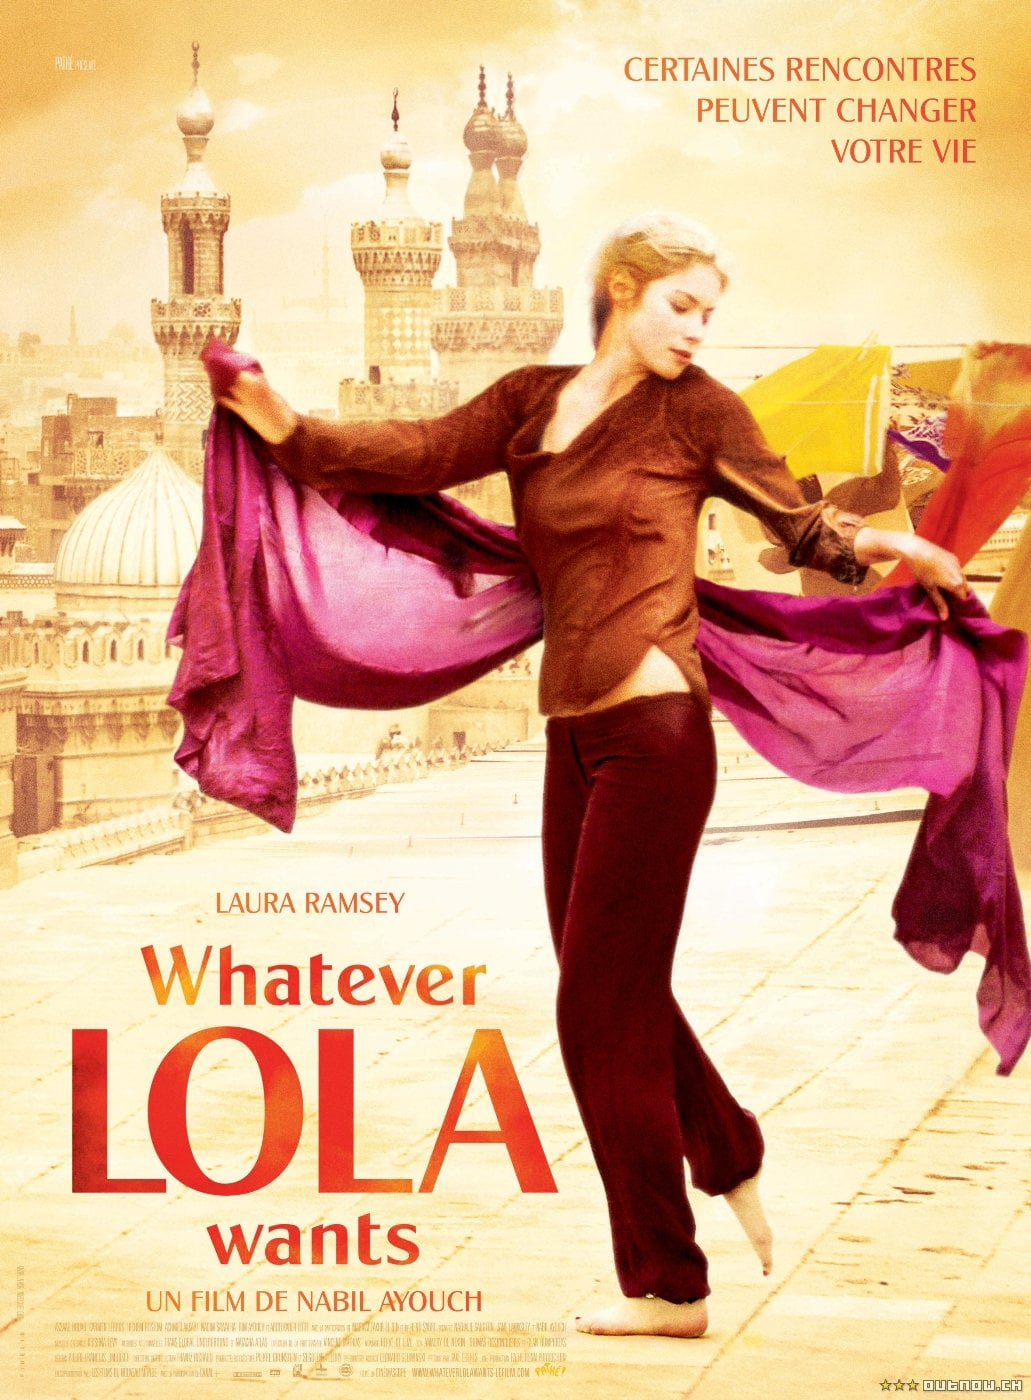 Whatever Lola wants (2007)